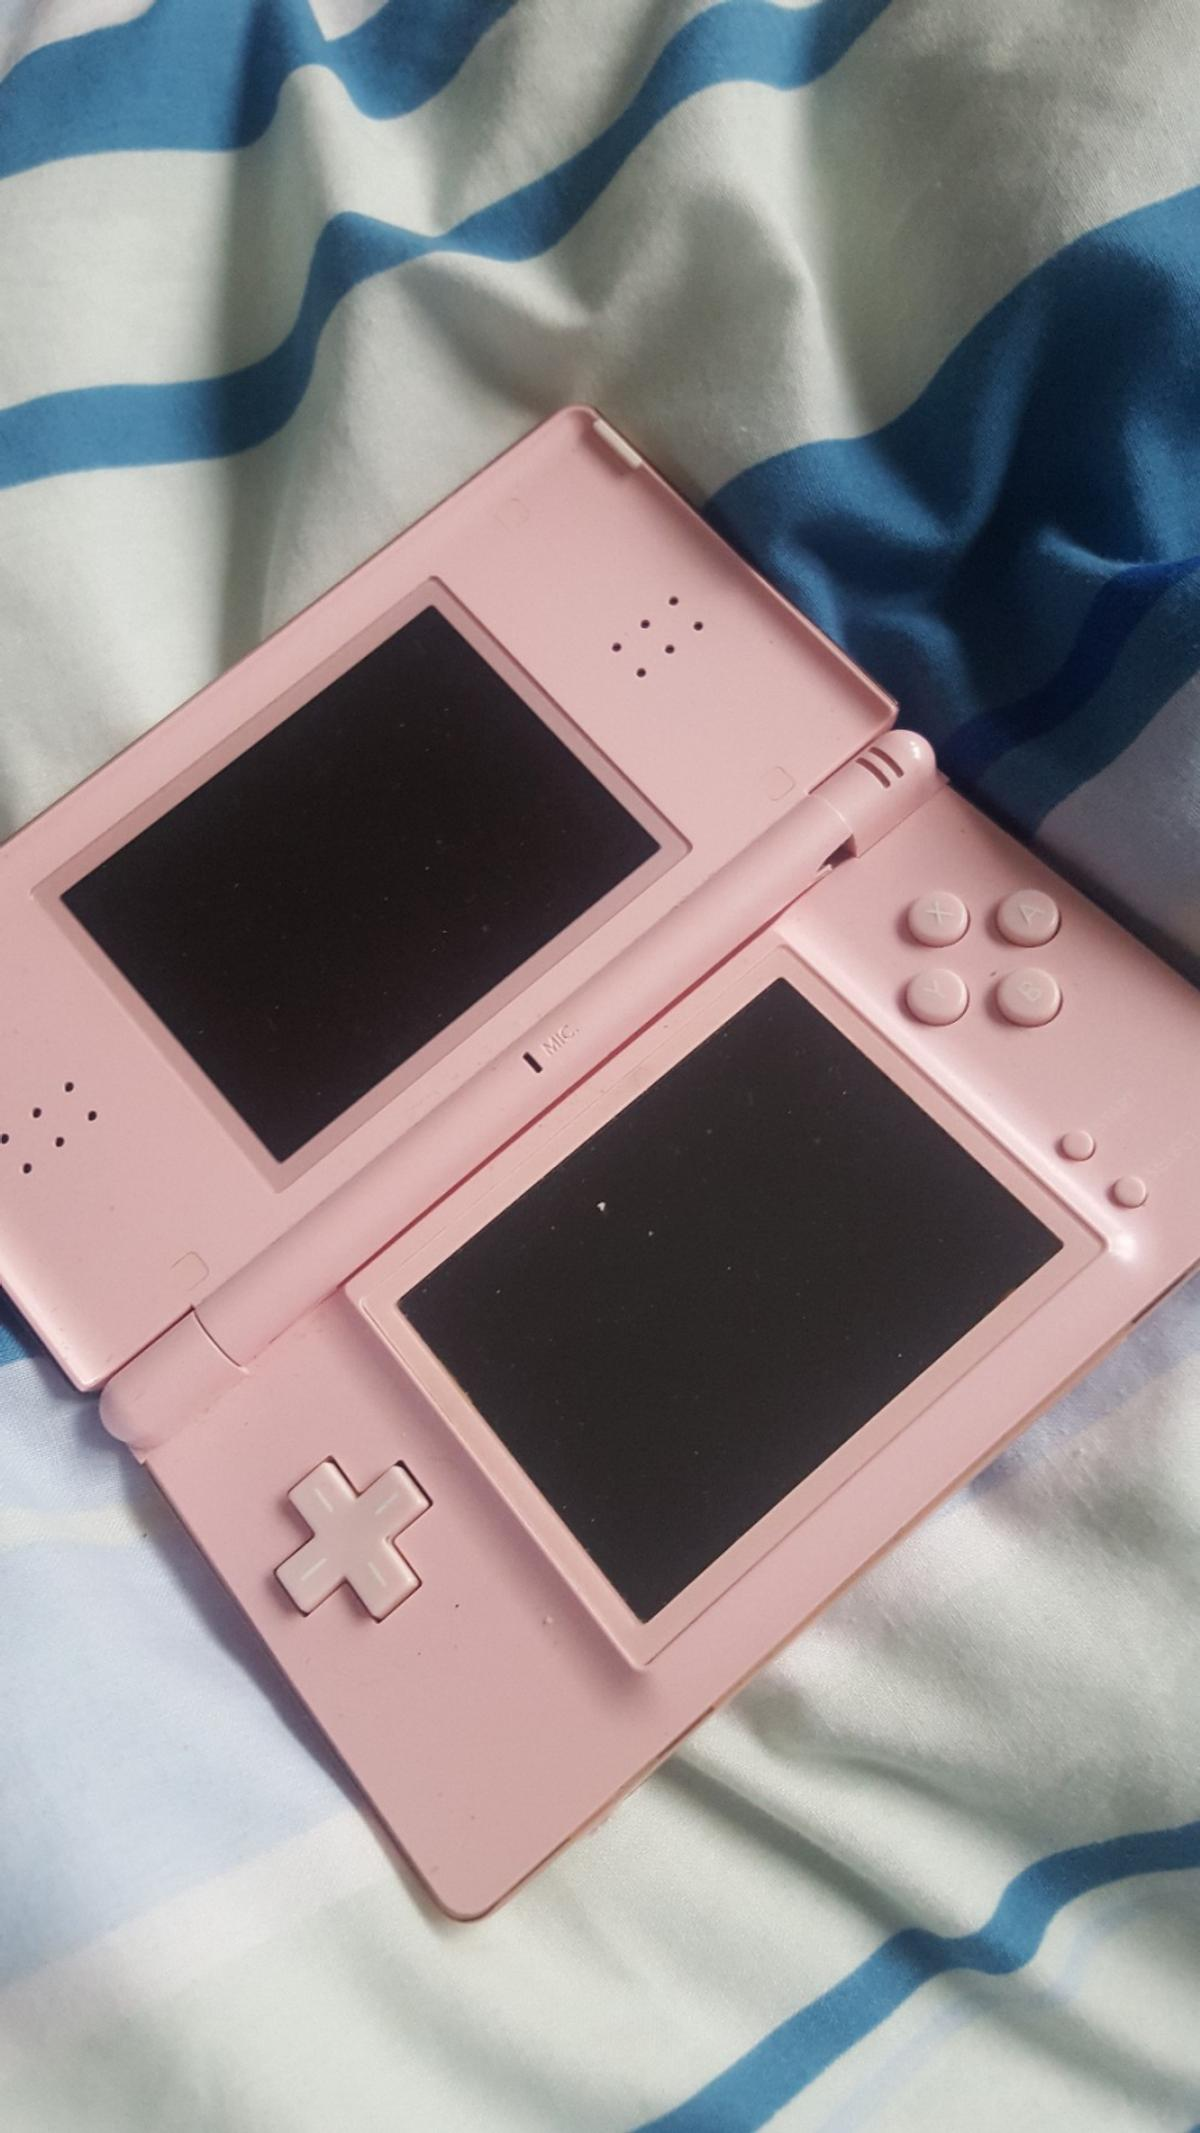 first ds with charger pink works perfectly although there is crack near hinge doesn't affect console